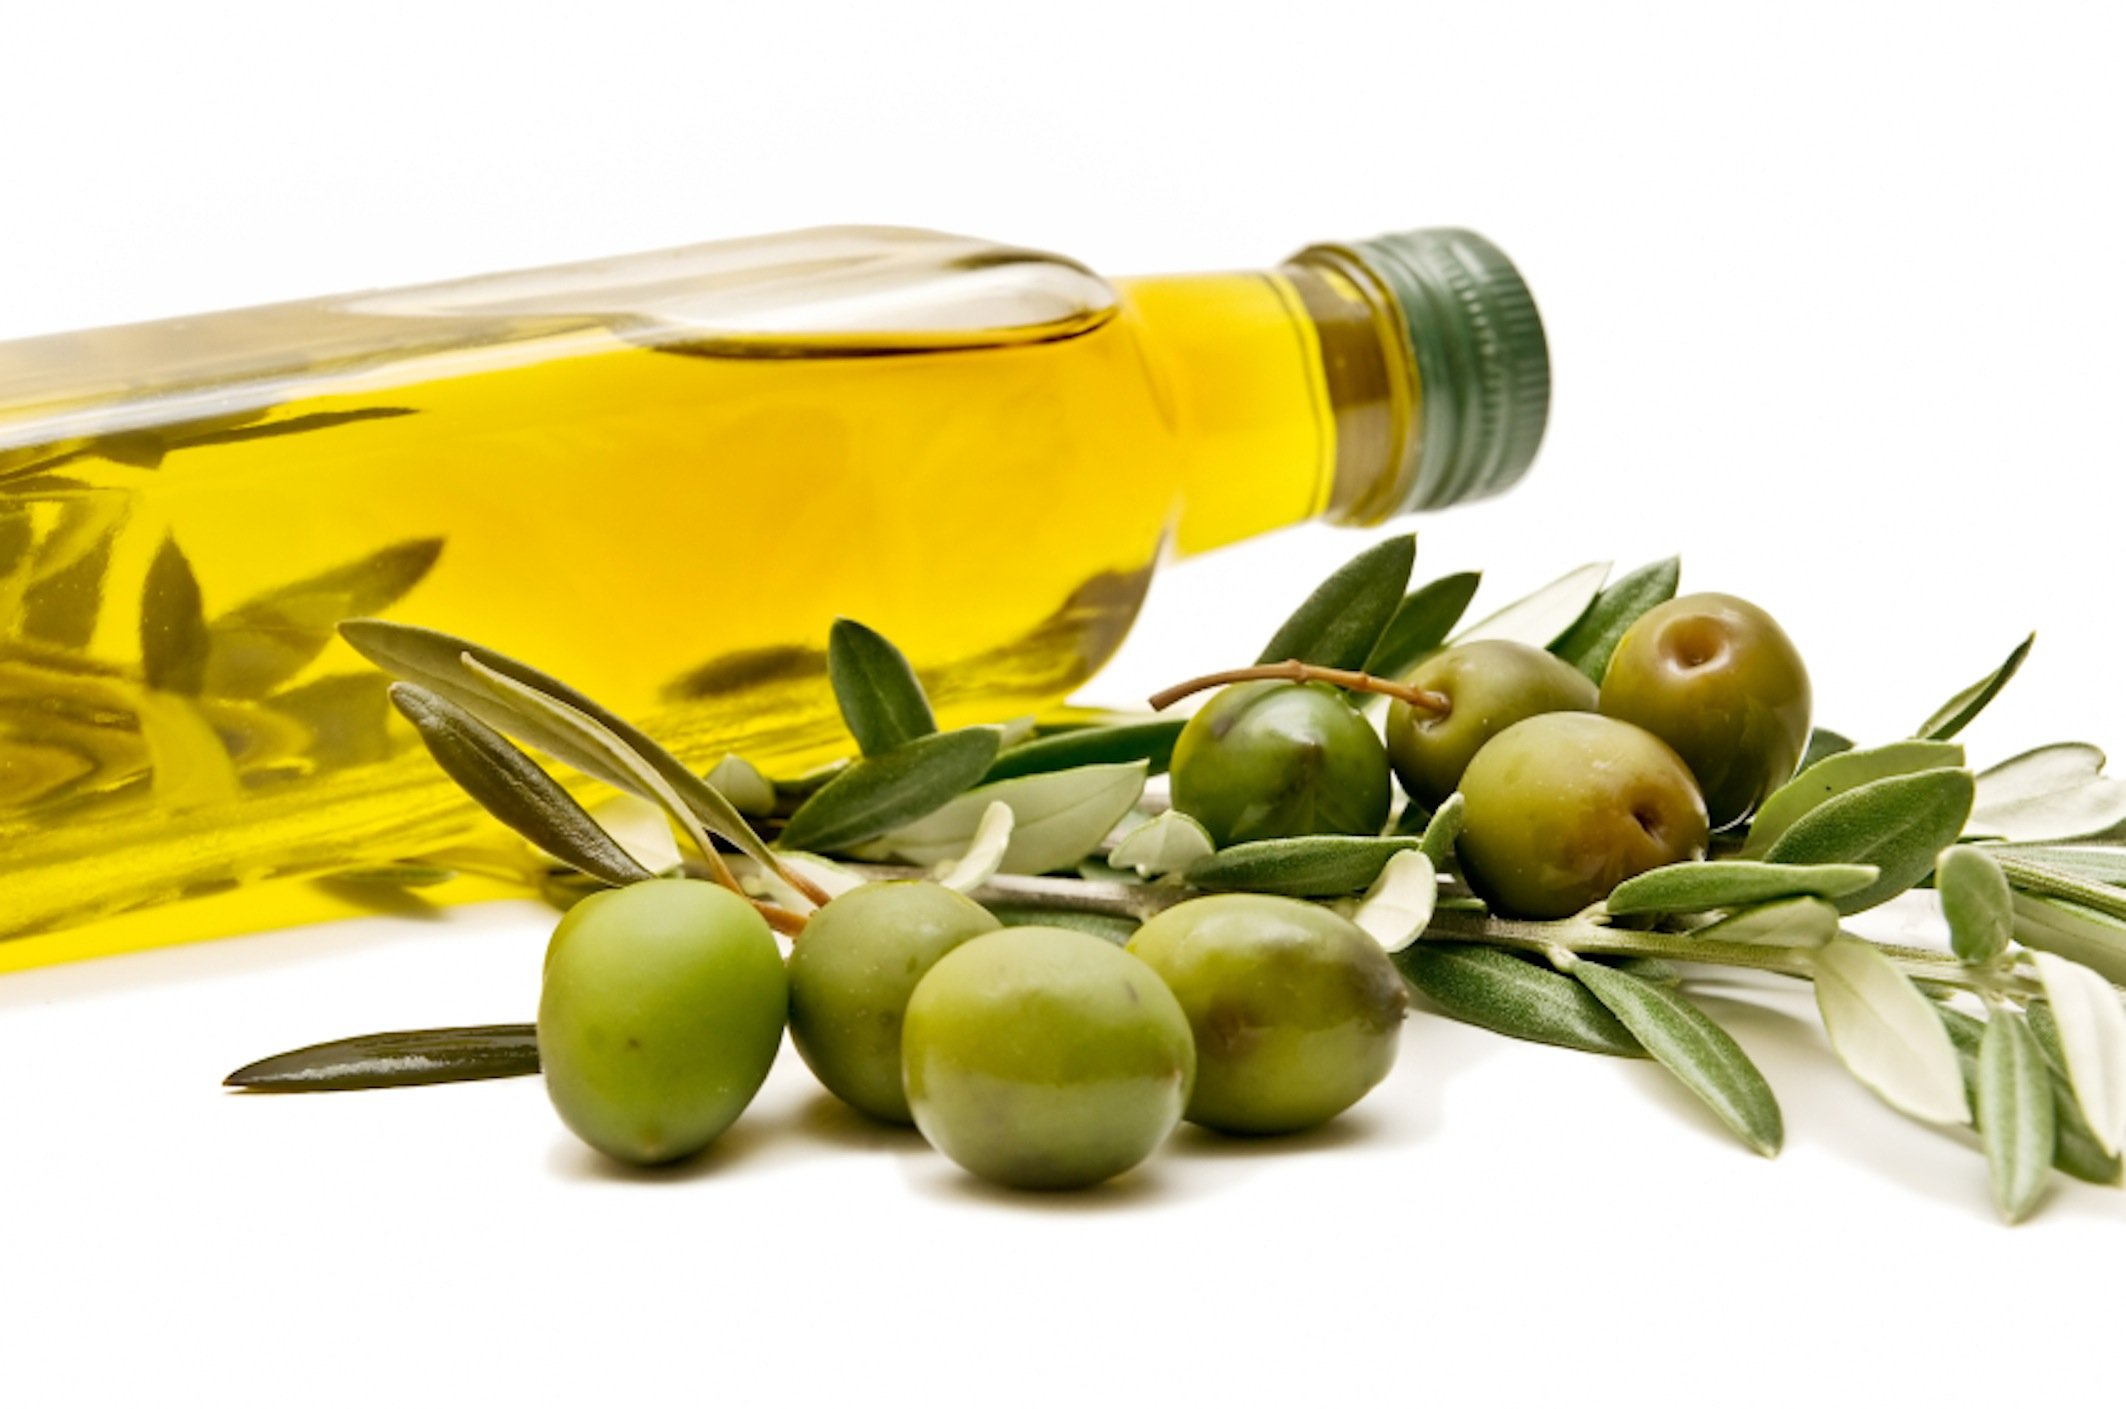 Oil, Nutritional Values